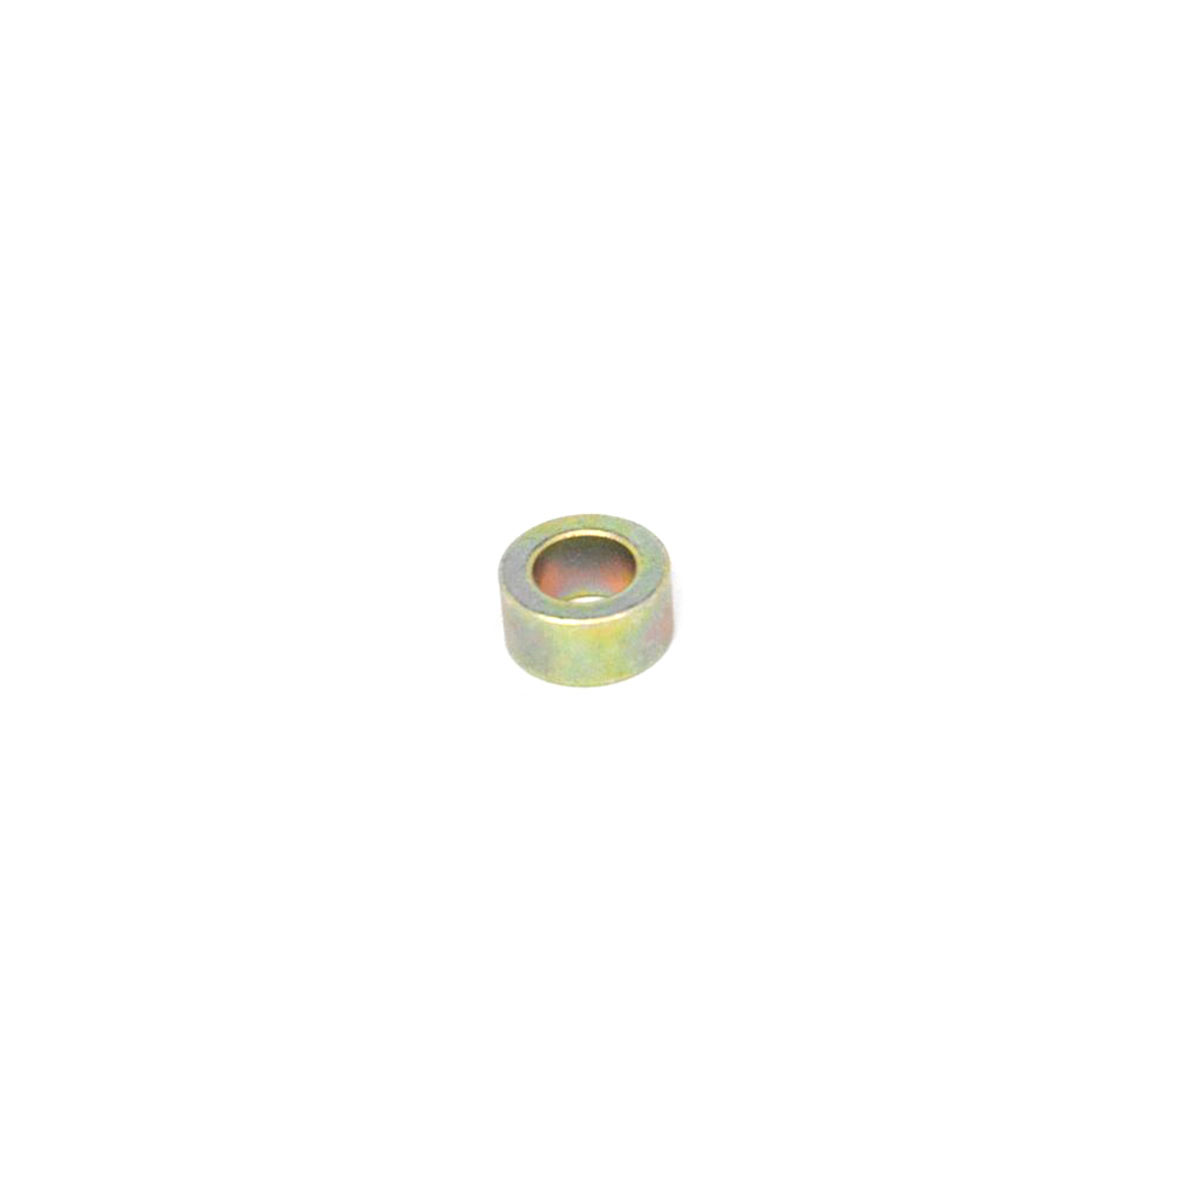 Scag B Idler Pulley Spacer 43041